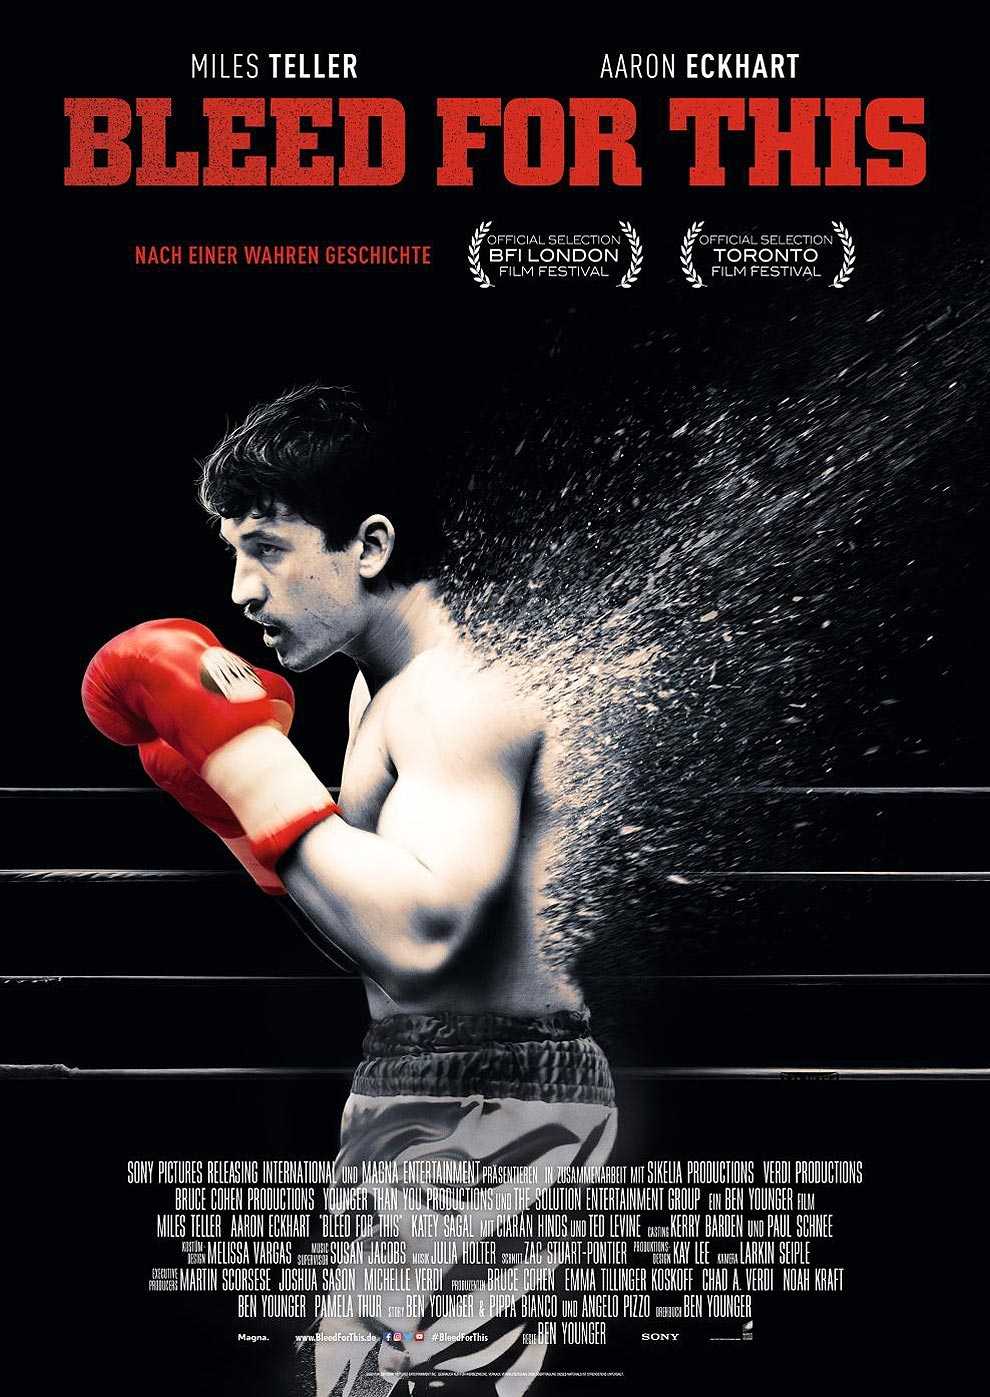 Bleed for this (Poster)